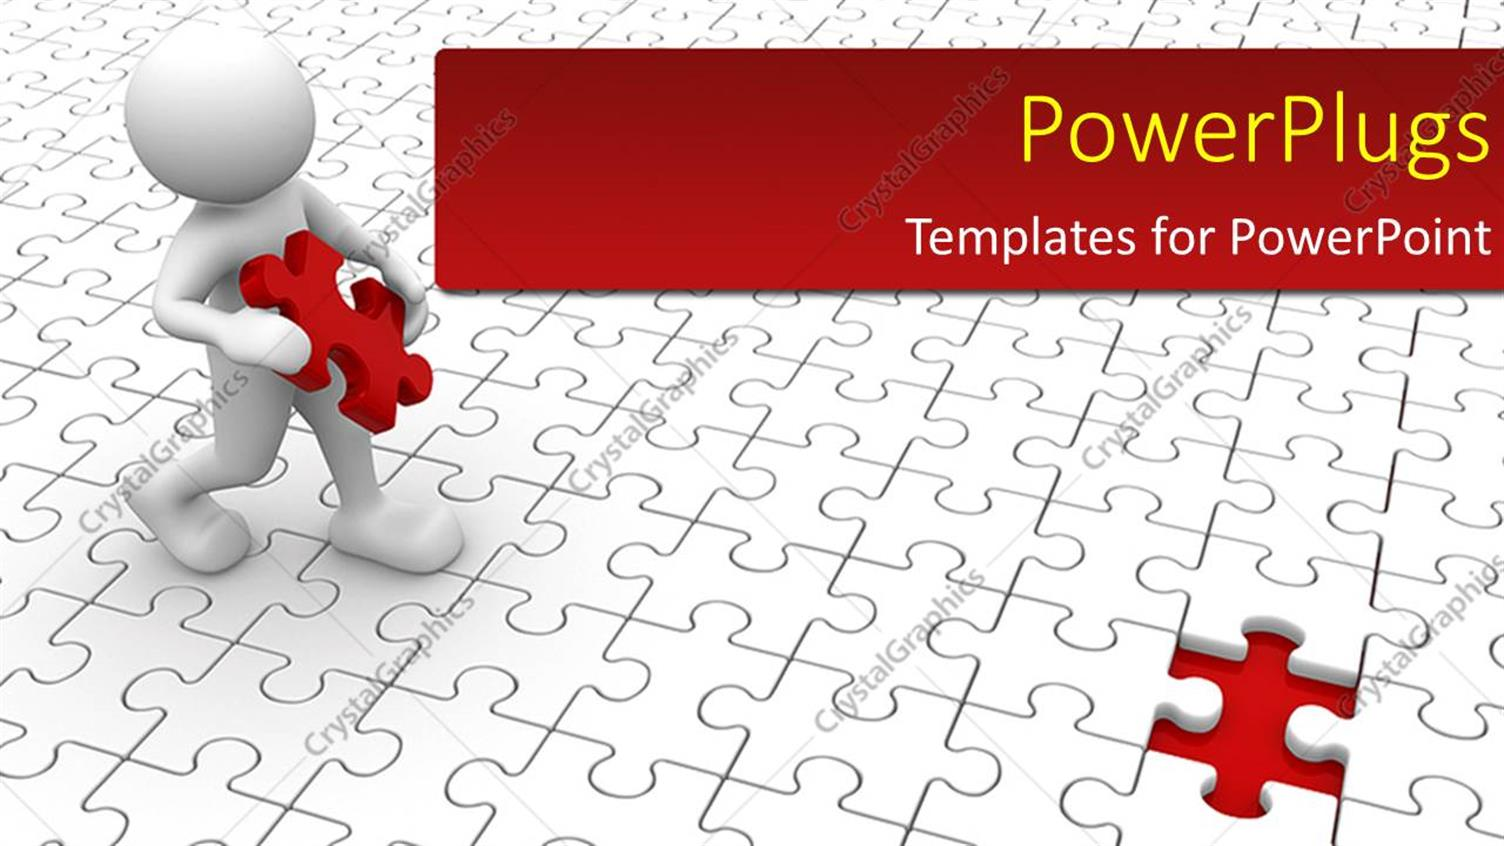 PowerPoint Template Displaying Human Character and Missing Puzzle Piece with Puzzle Flooring